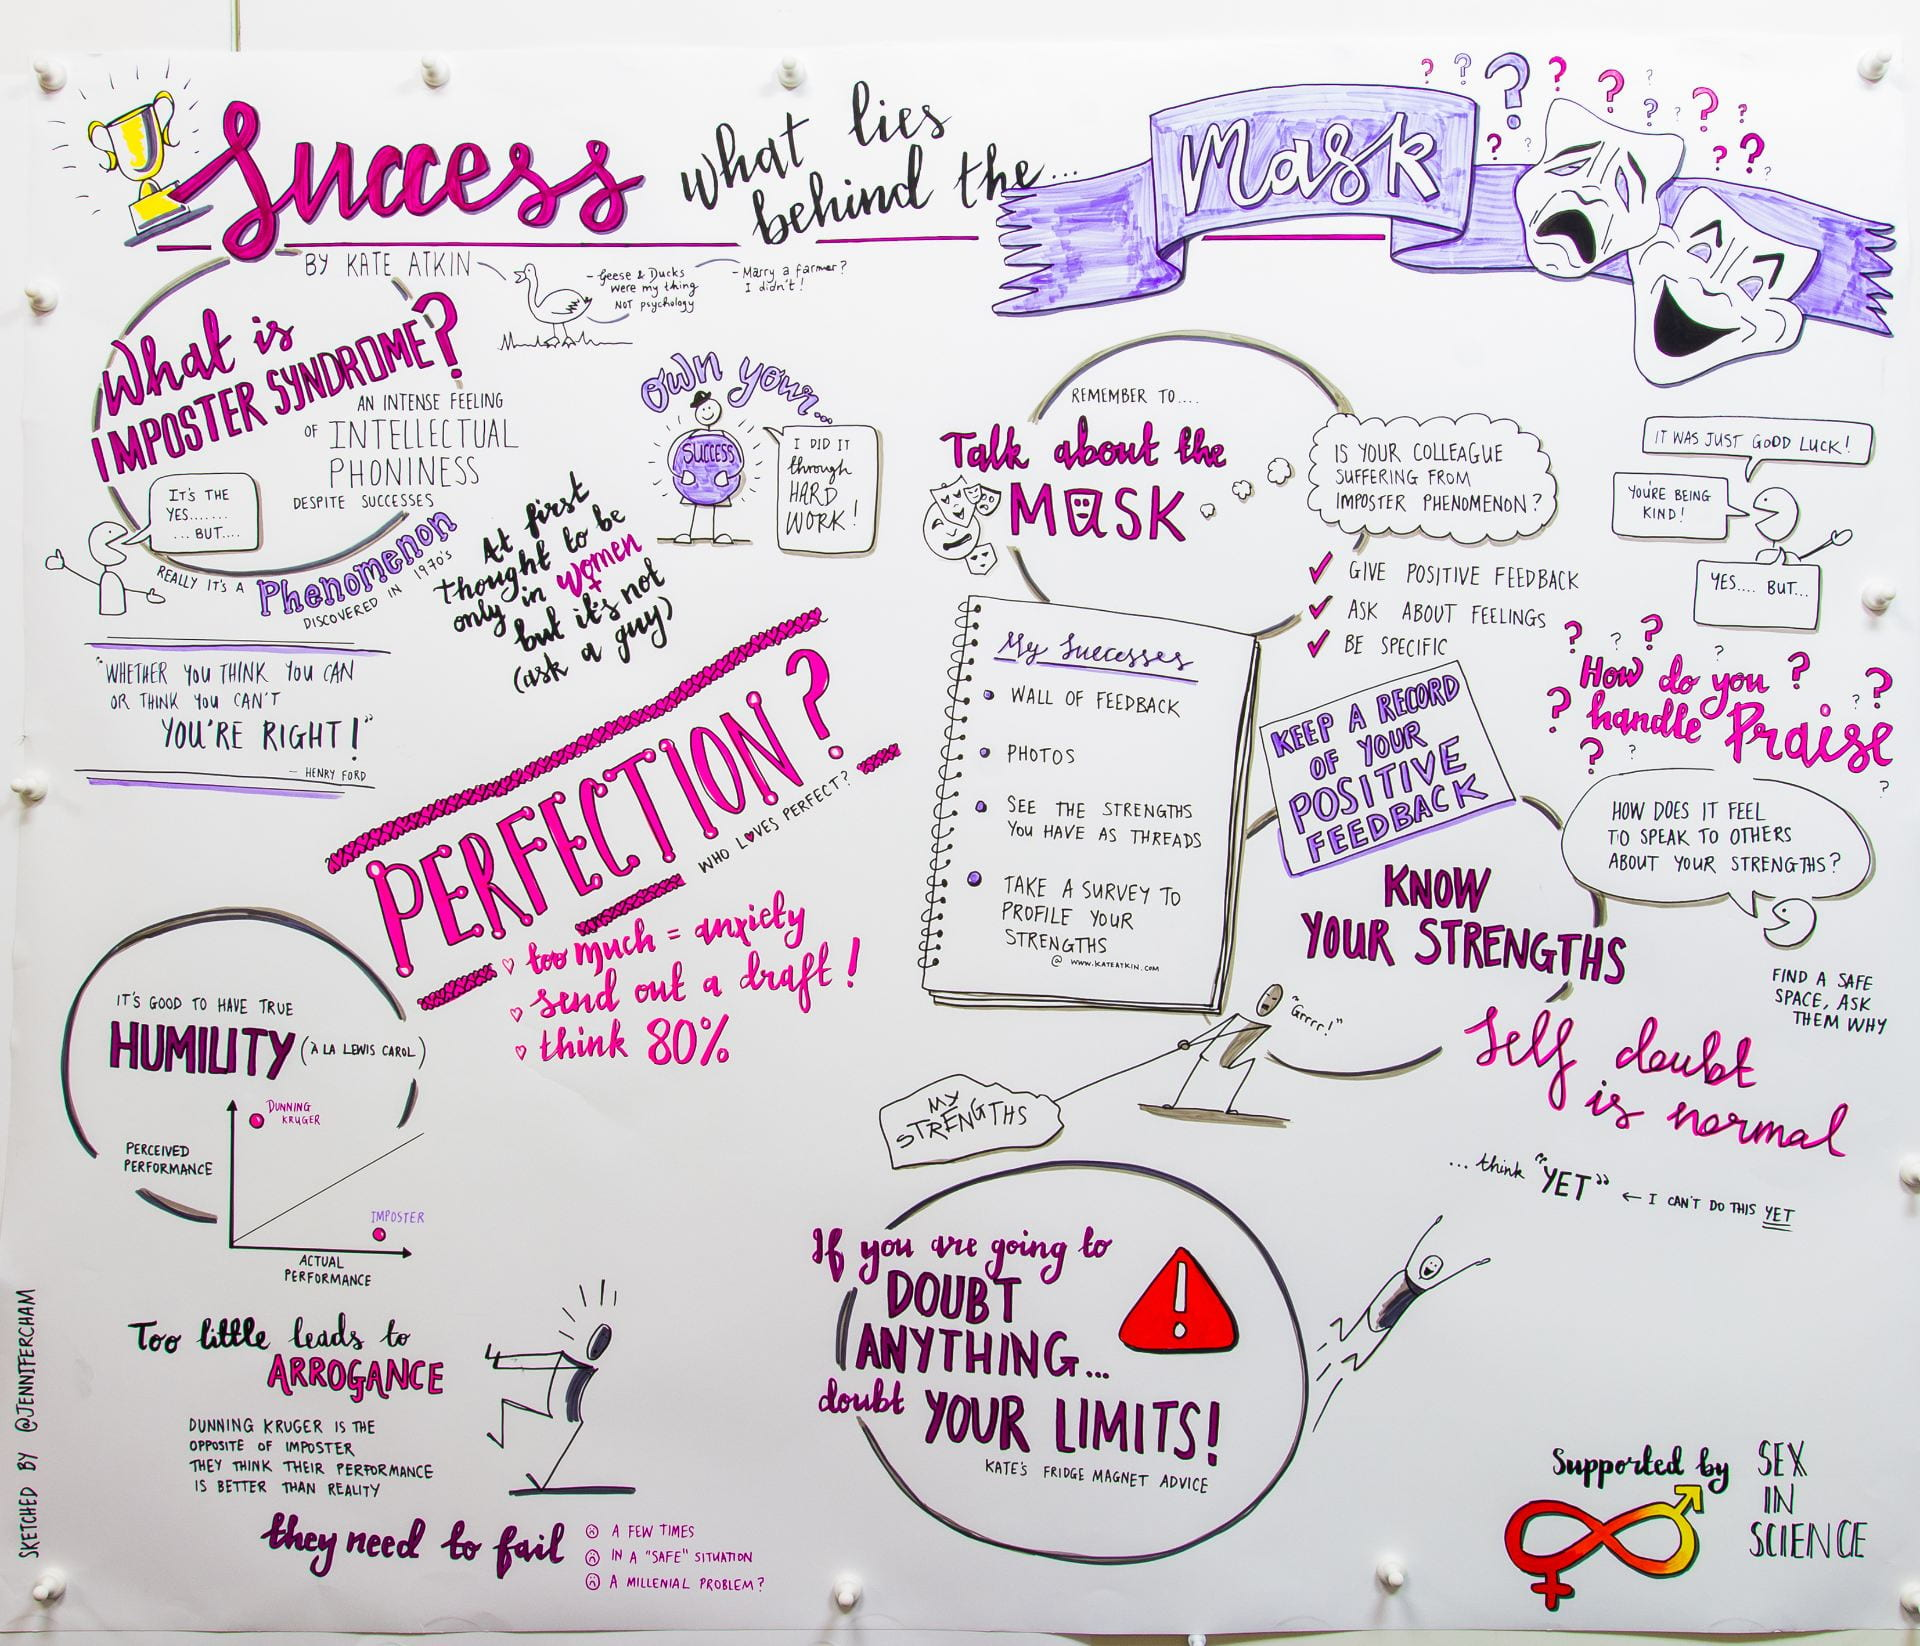 """A white poster filled with information about potential coping strategies for imposter syndrome, all written in various shades of purple, pink, and red. The title of the poster is """"Success: What Lies behind the Mask."""""""